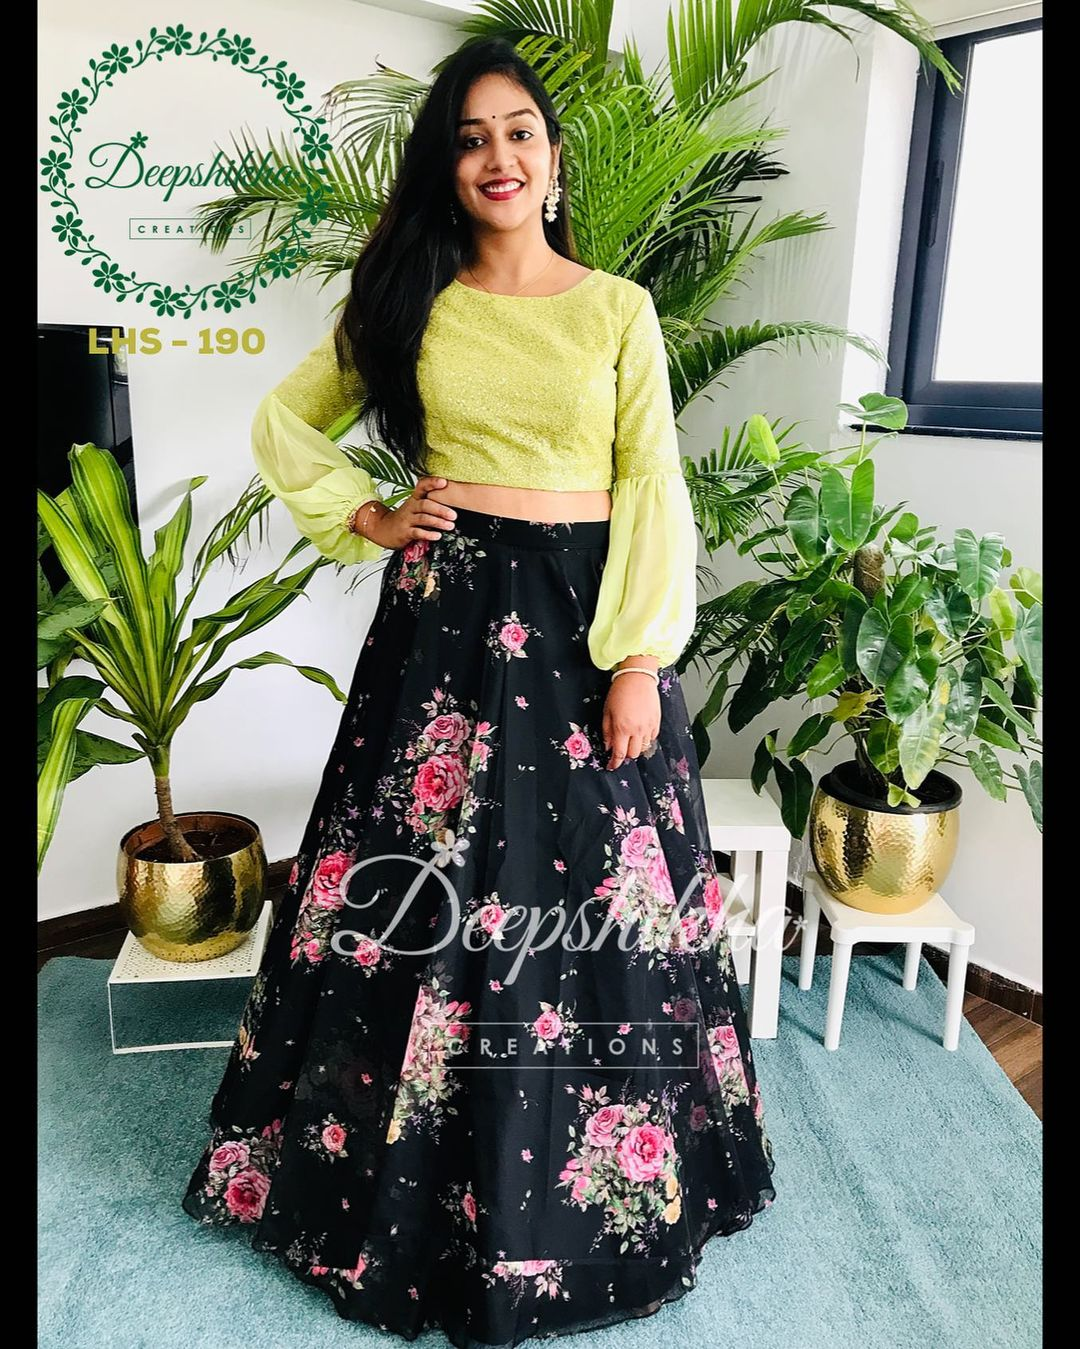 Beautiful black floral skirt and full sleeve crop top. LHS - 190. For queries kindly whatsapp: +91 9059683293 . 2021-09-20